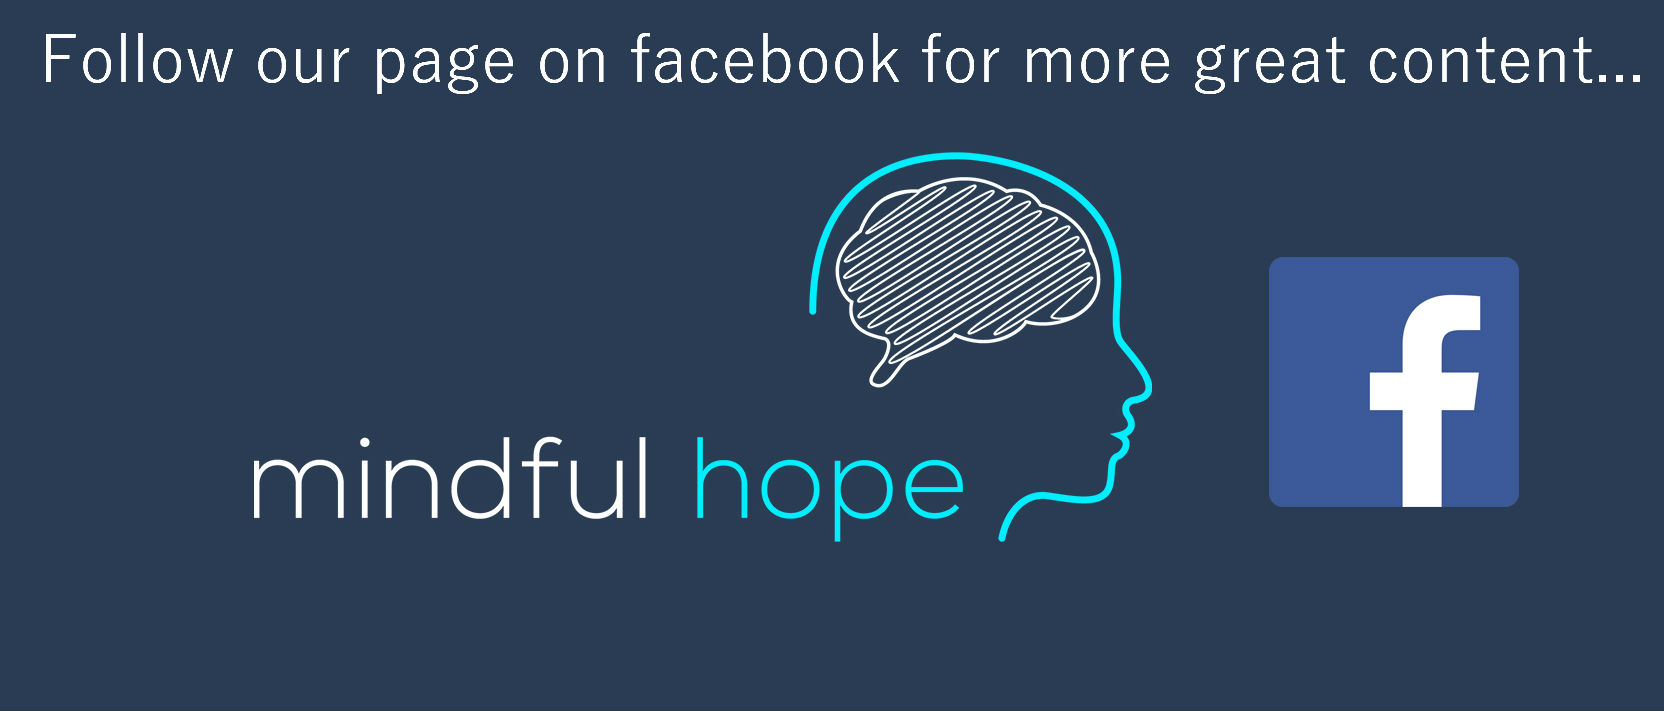 mindful hope on facebook